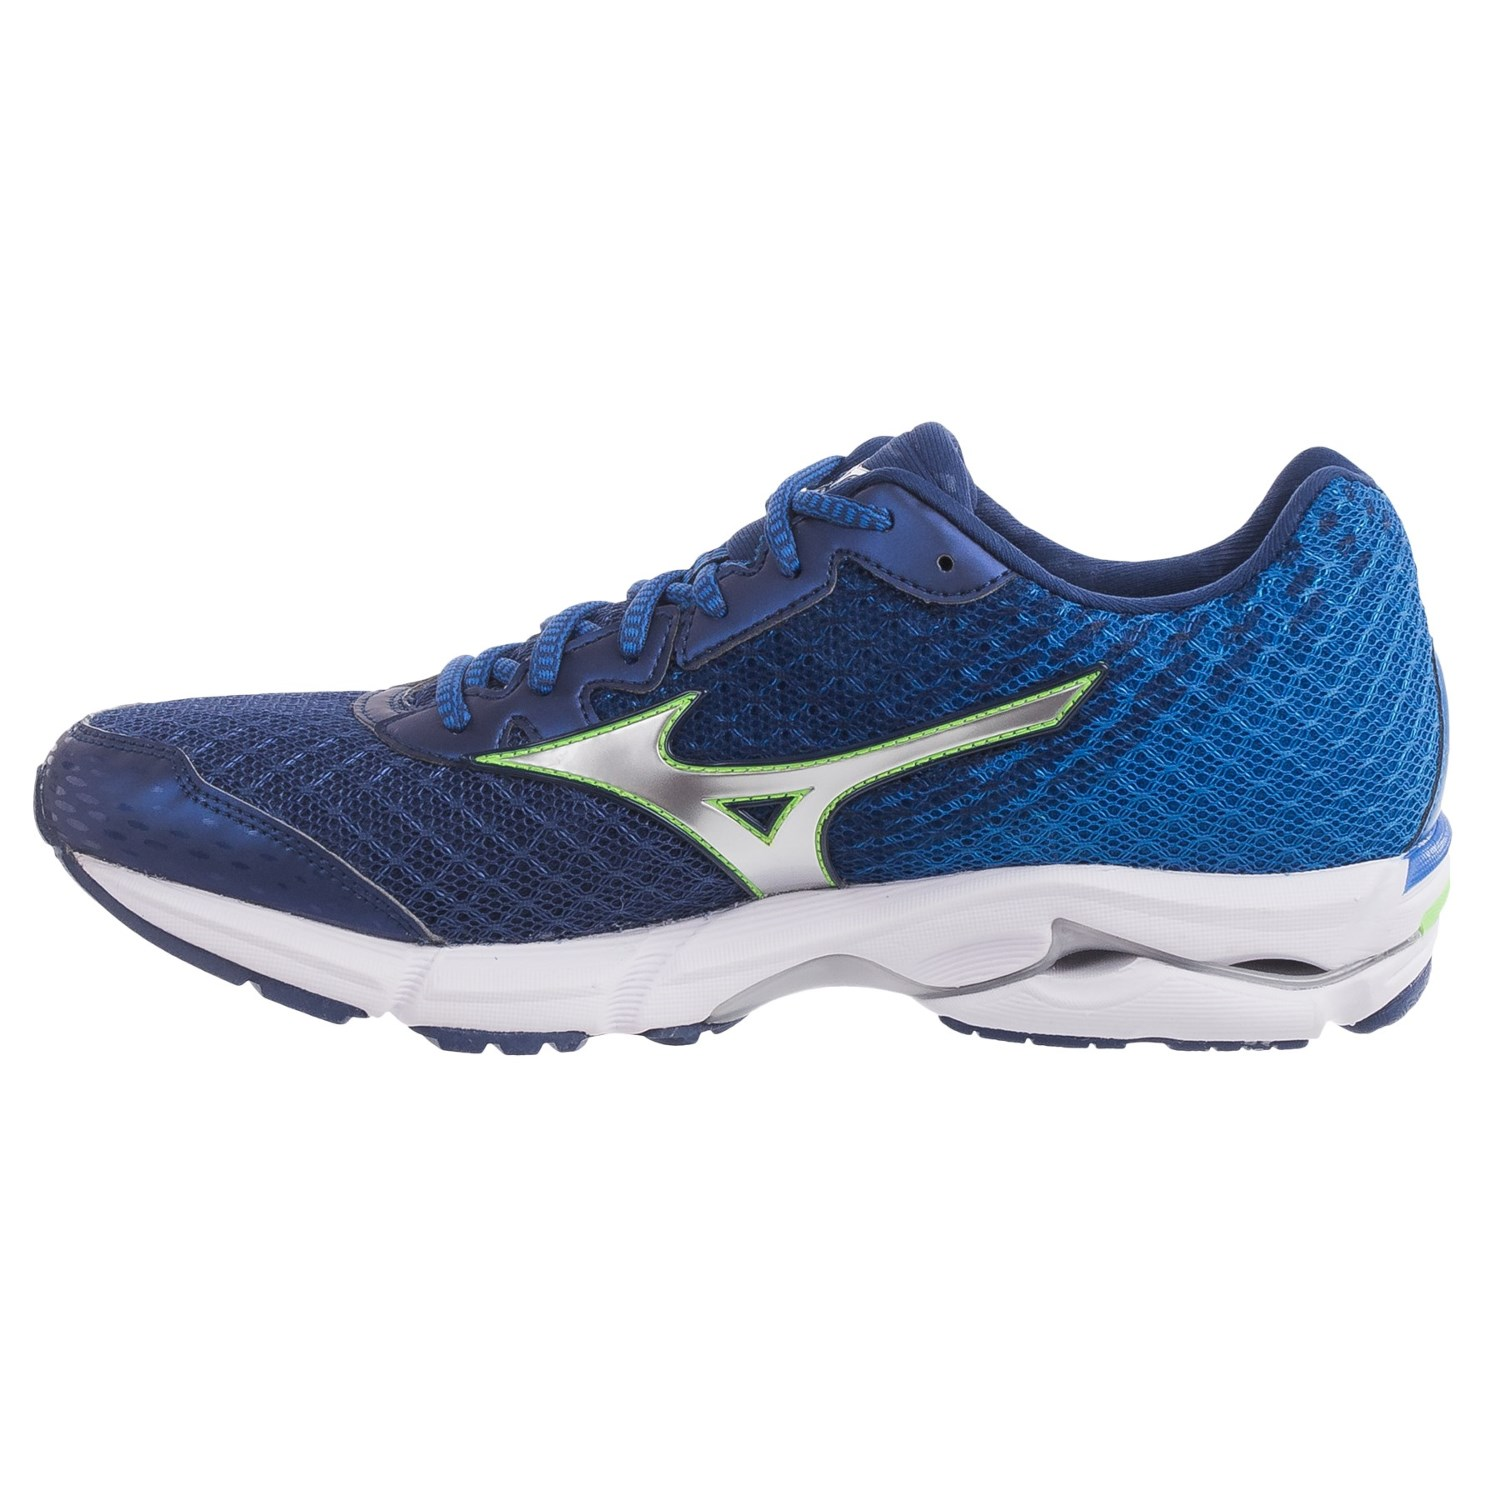 mizuno wave rider 19 running shoes for men save 41. Black Bedroom Furniture Sets. Home Design Ideas